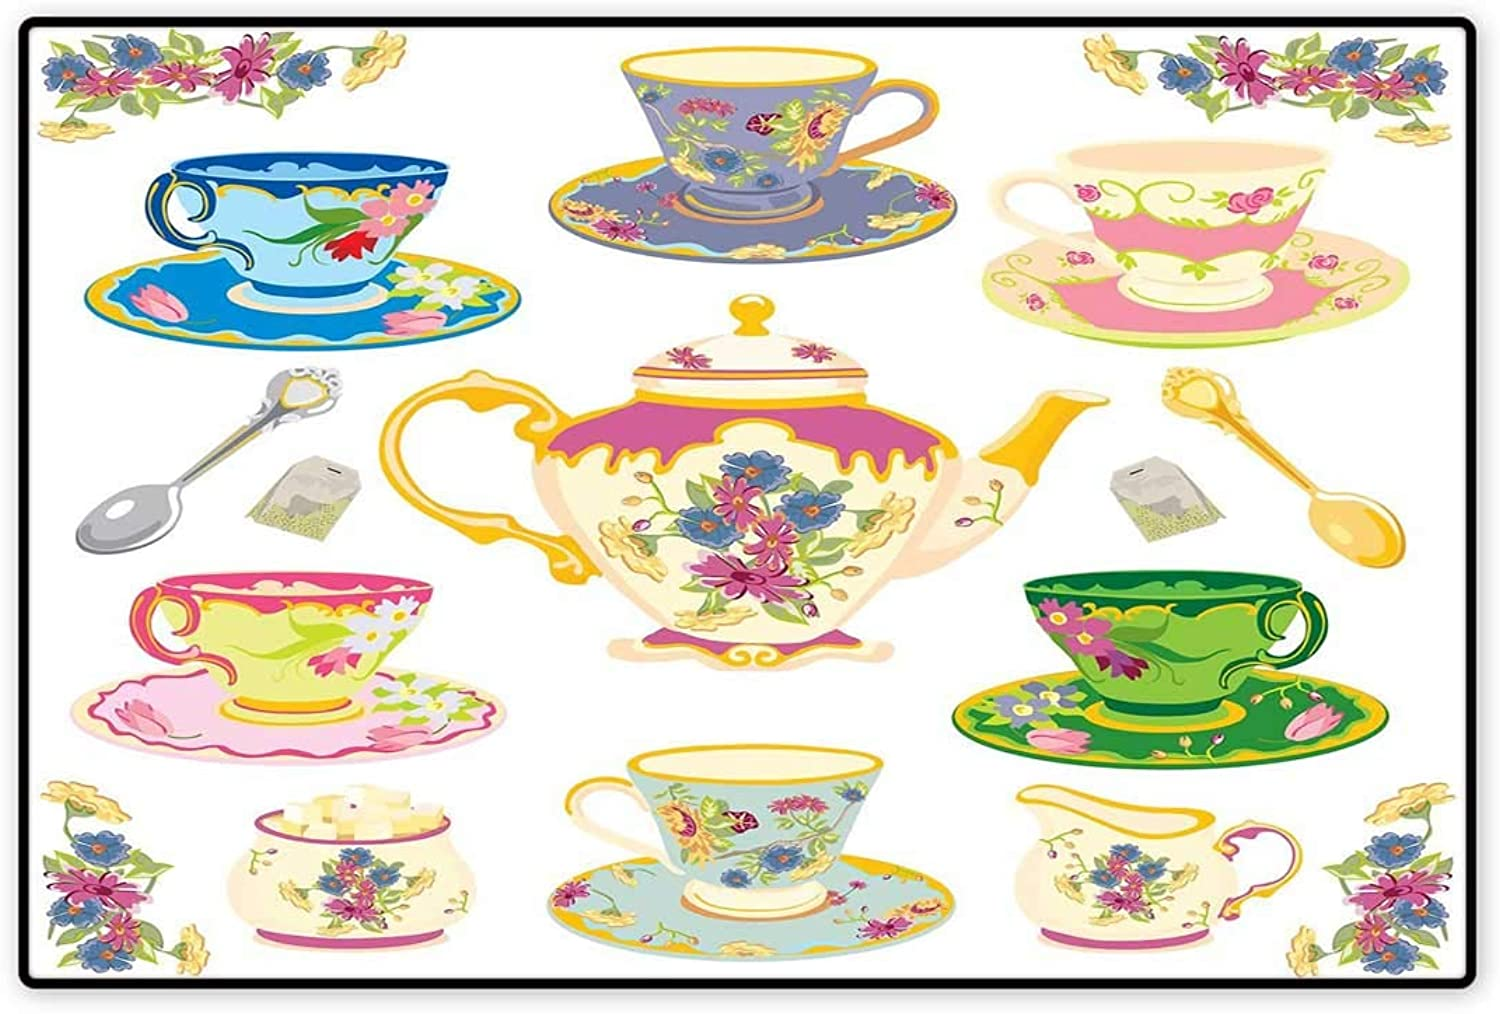 Tea Party Door Mat Outside Selection of Vivid colord Teacups Pot Sugar and Floral Arrangements in Corners Floor Mat Pattern 32 x48  Multicolor